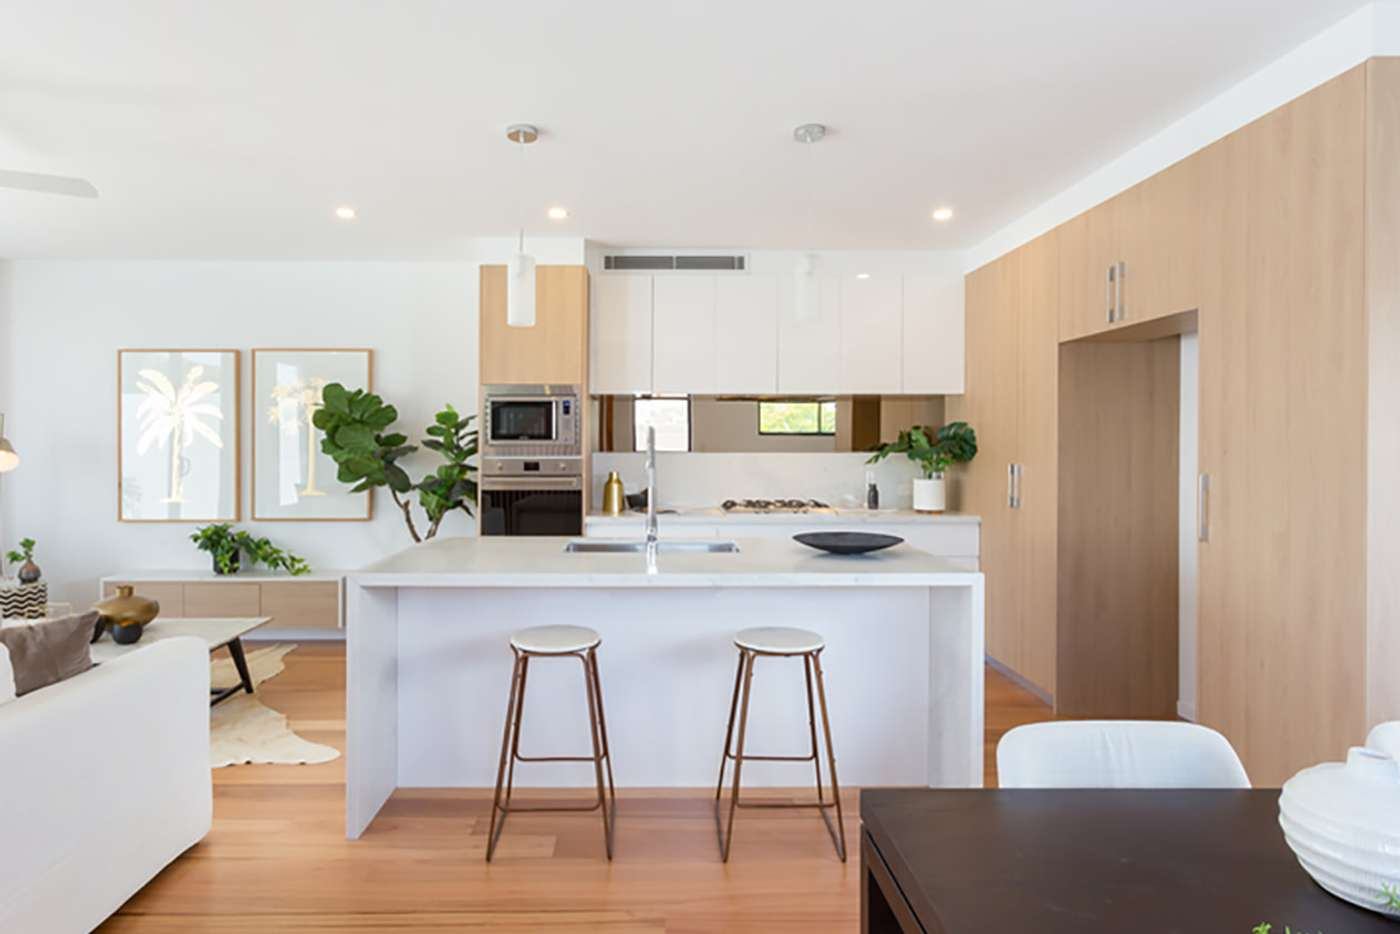 Fifth view of Homely townhouse listing, 12/96-100 Nicholson Street, Greenslopes QLD 4120